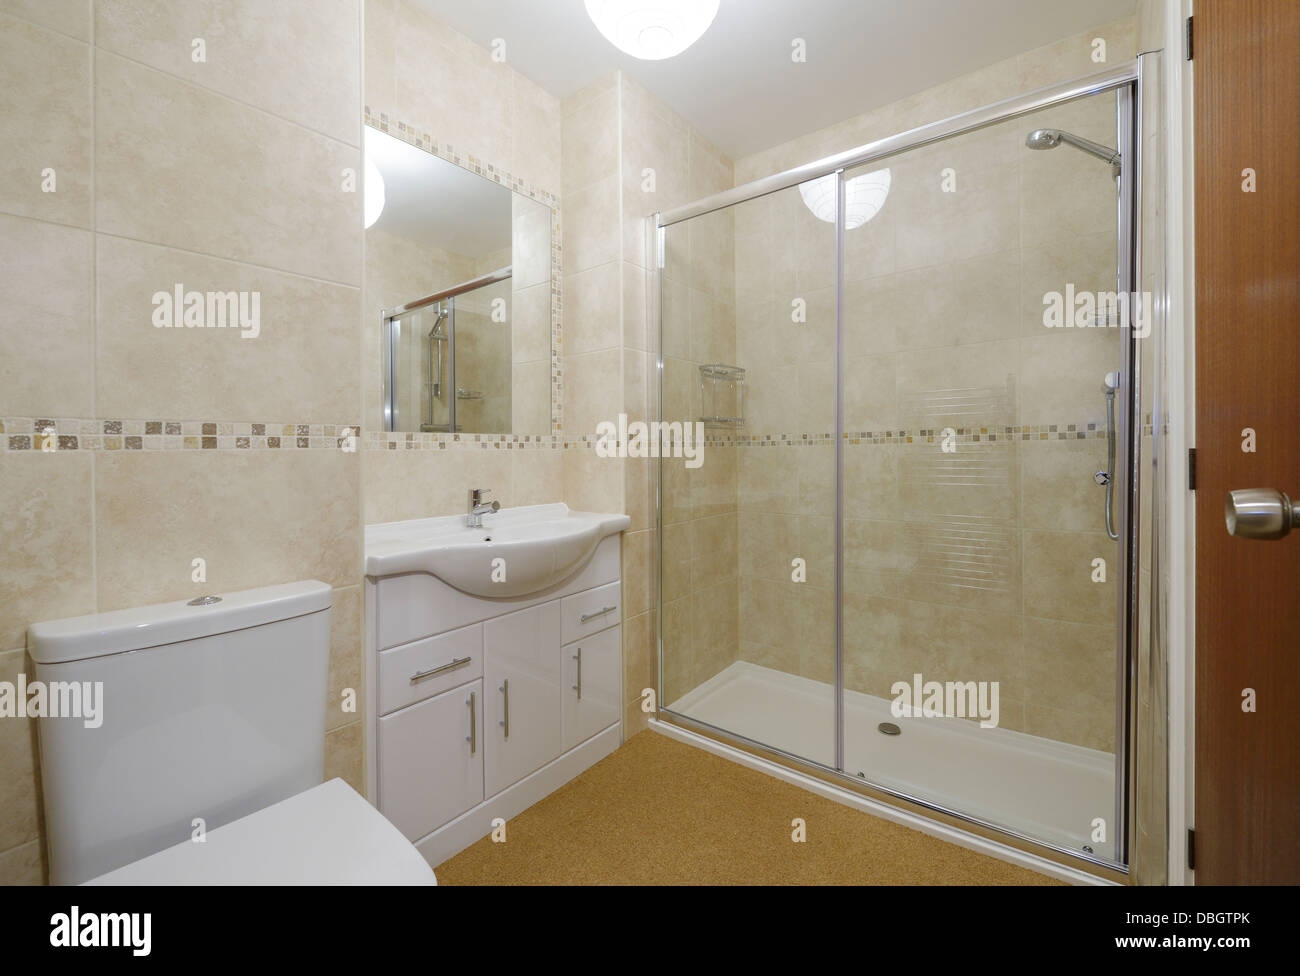 Modern Small Bathroom With Toilet Basin And Shower Stock Photo Alamy